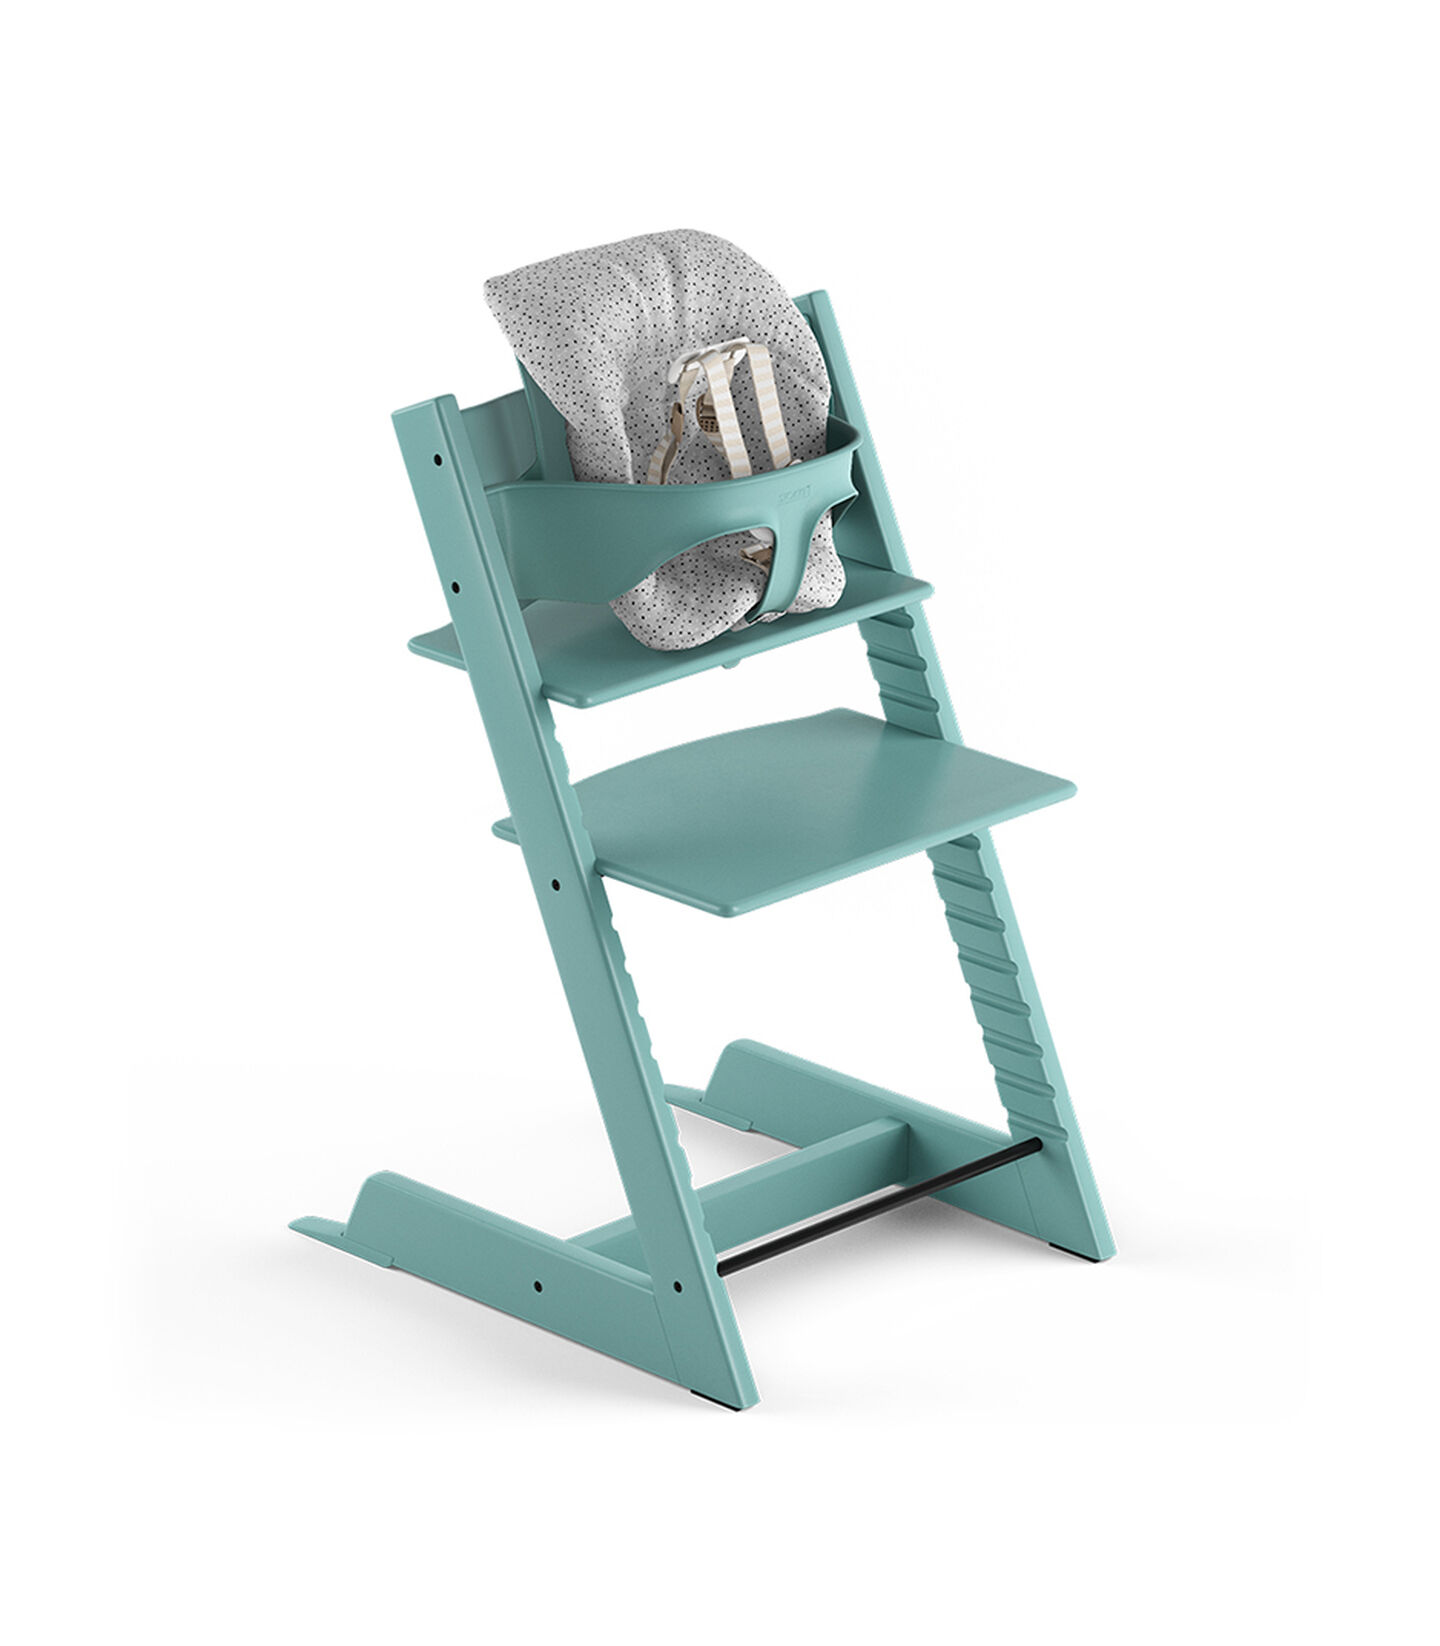 Tripp Trapp® Aqua Blue, Beech. With Tripp Trapp® Baby Set and Baby Cushion Cloud Sprinkle. US version with Harness.